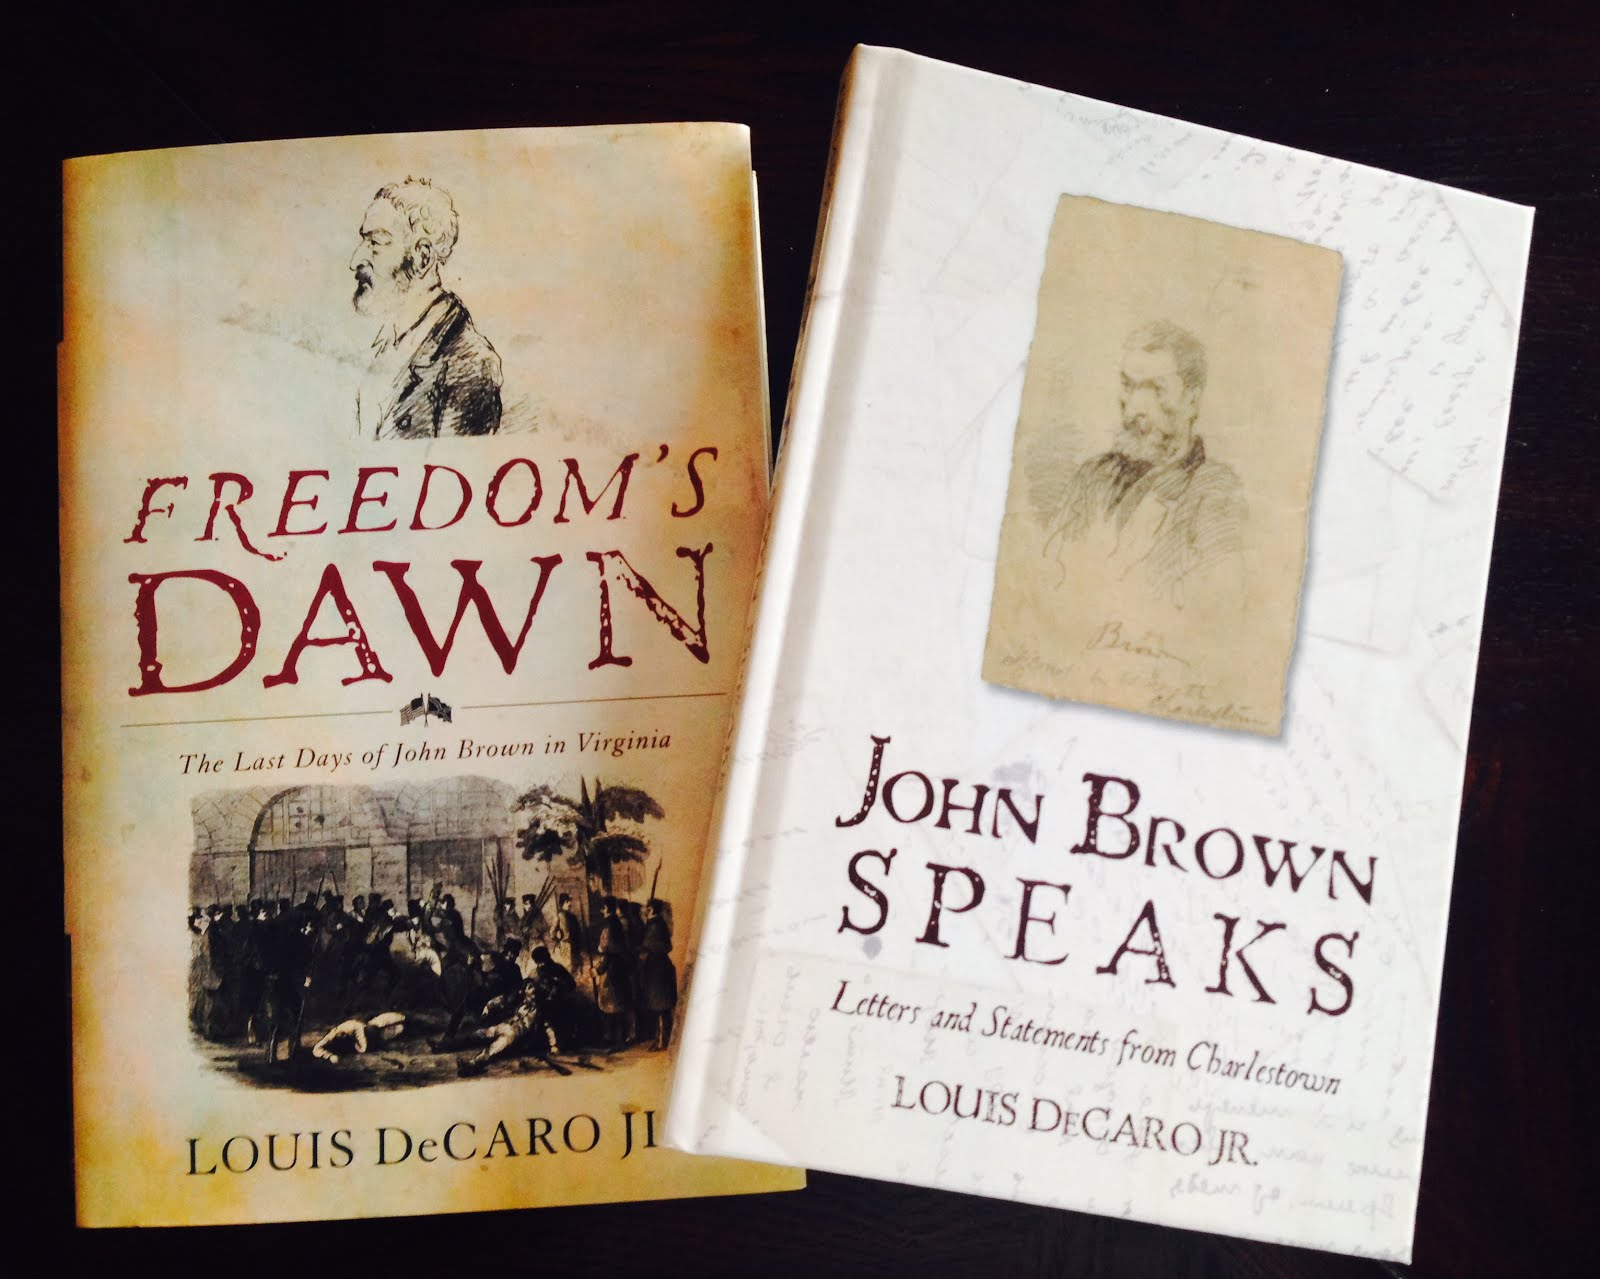 FREEDOM'S DAWN and JOHN BROWN SPEAKS